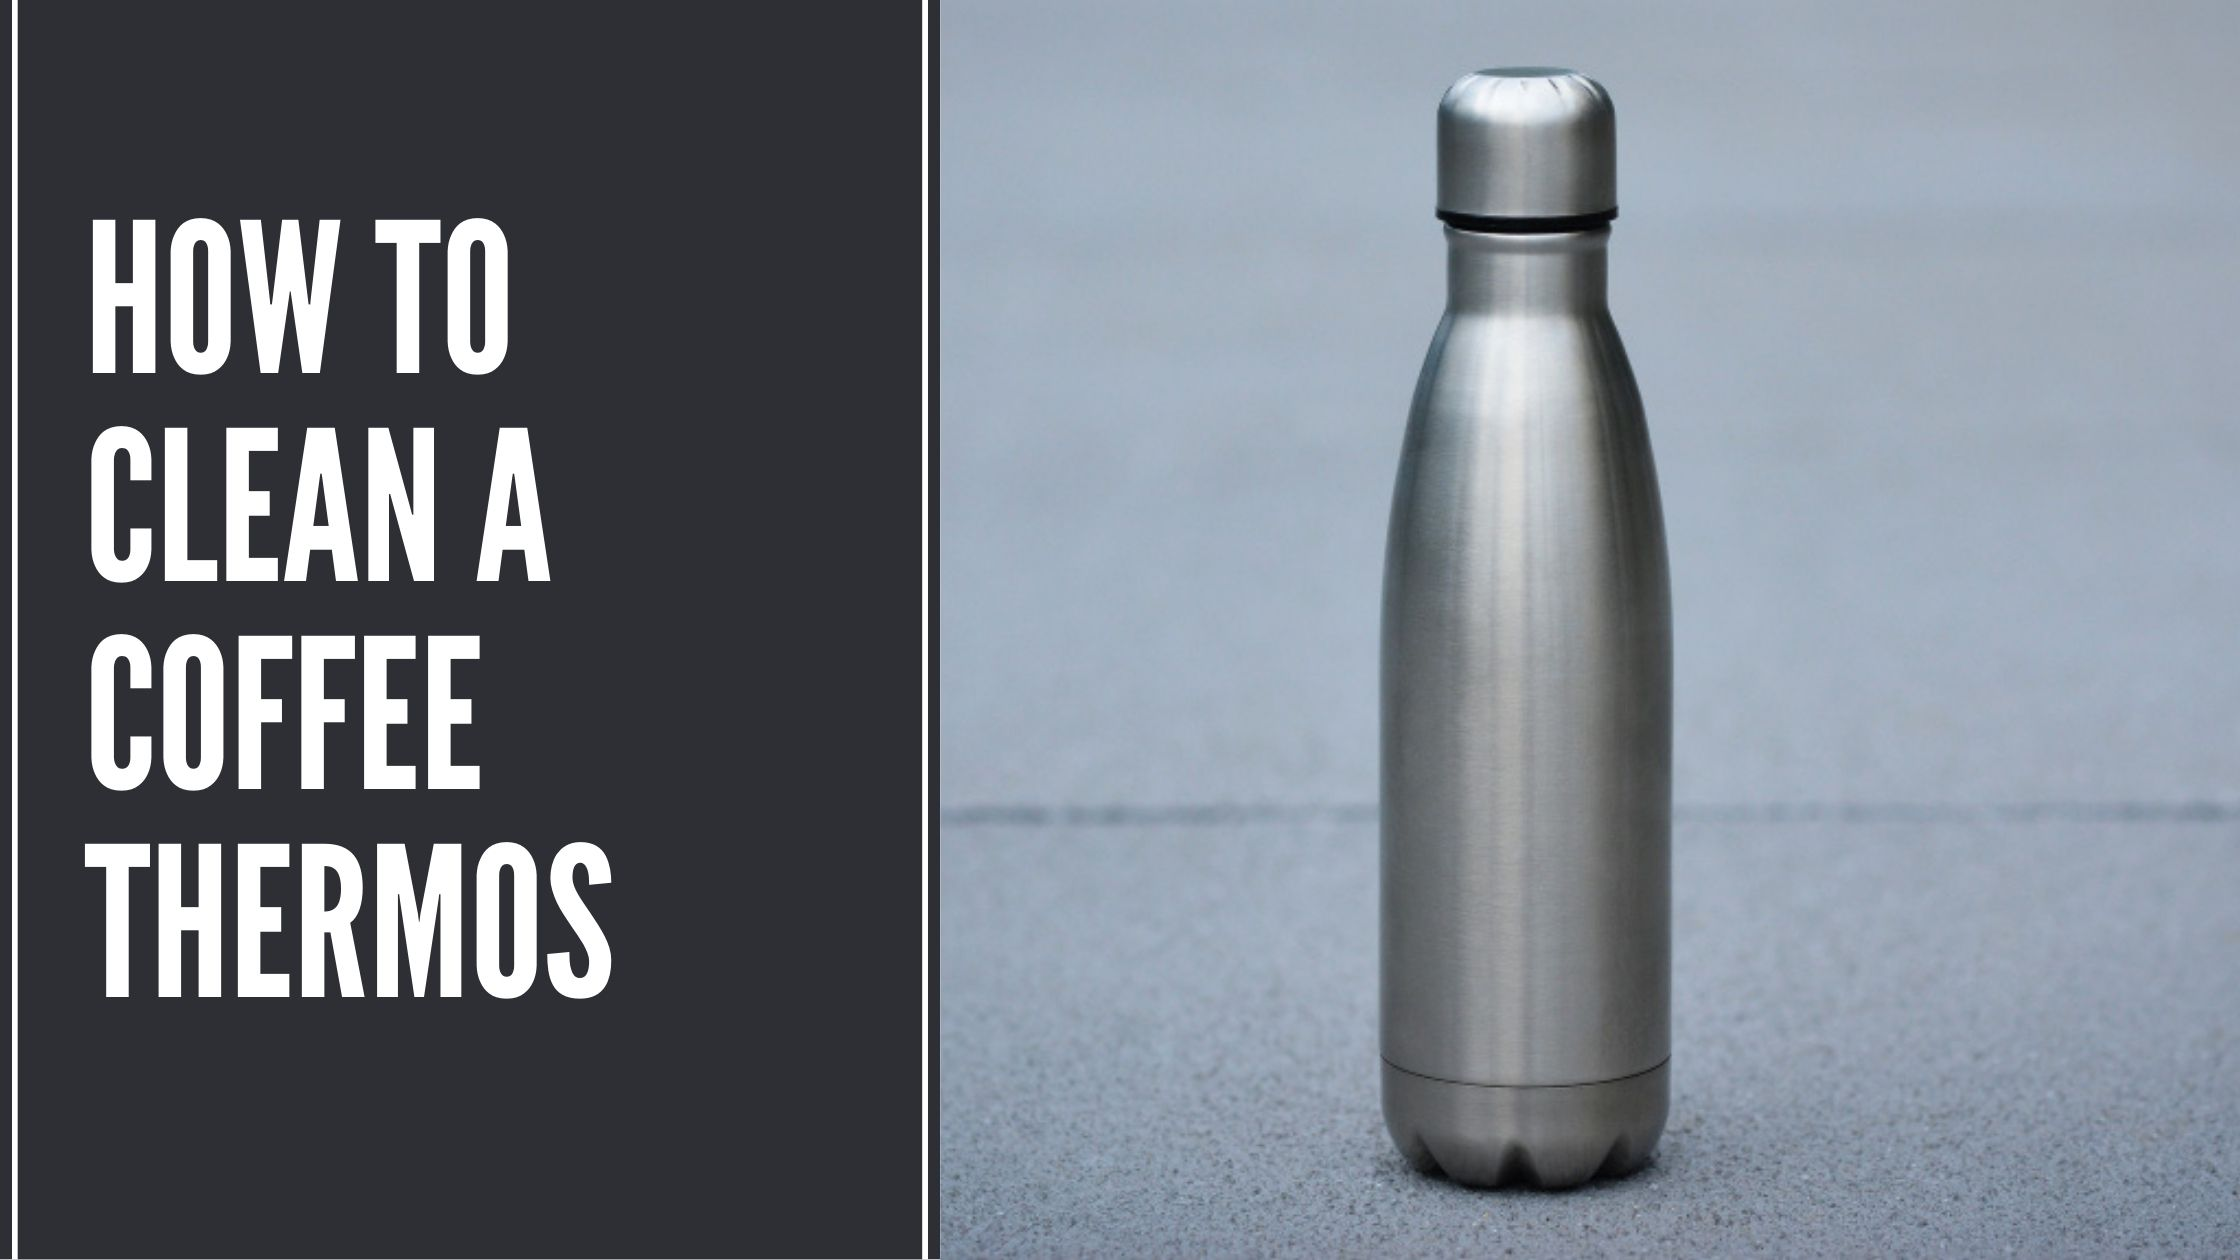 How to Clean a Coffee Thermos